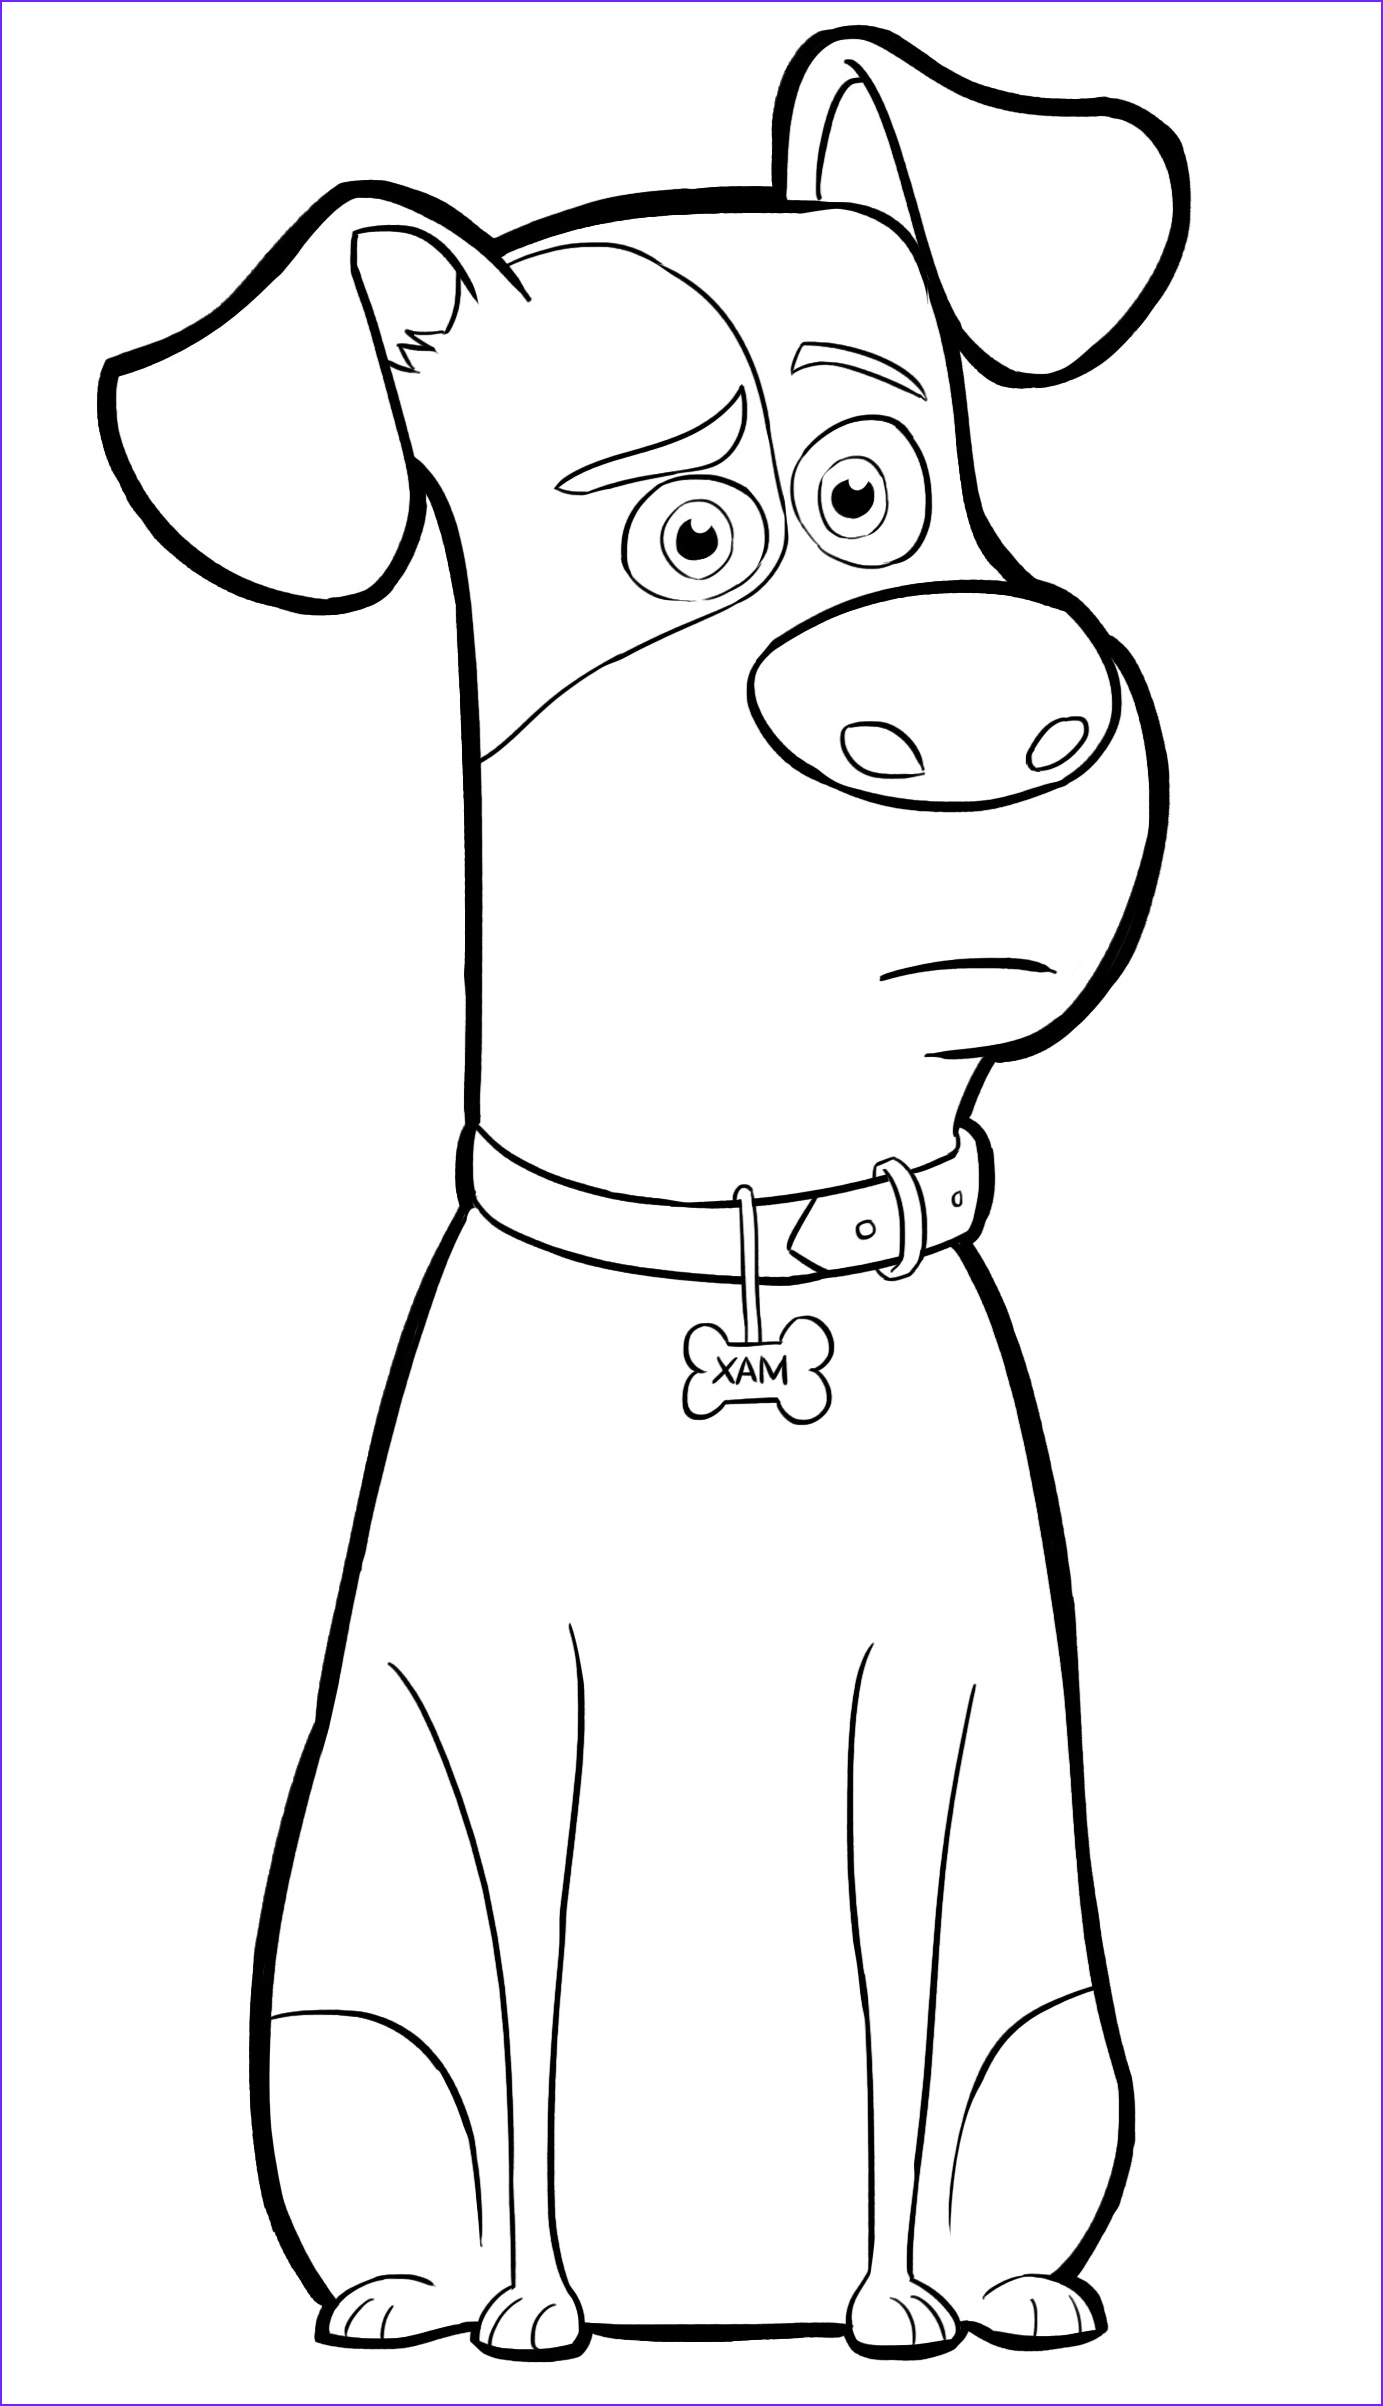 Coloring Book for Beautiful Photos Pets Coloring Pages Best Coloring Pages for Kids